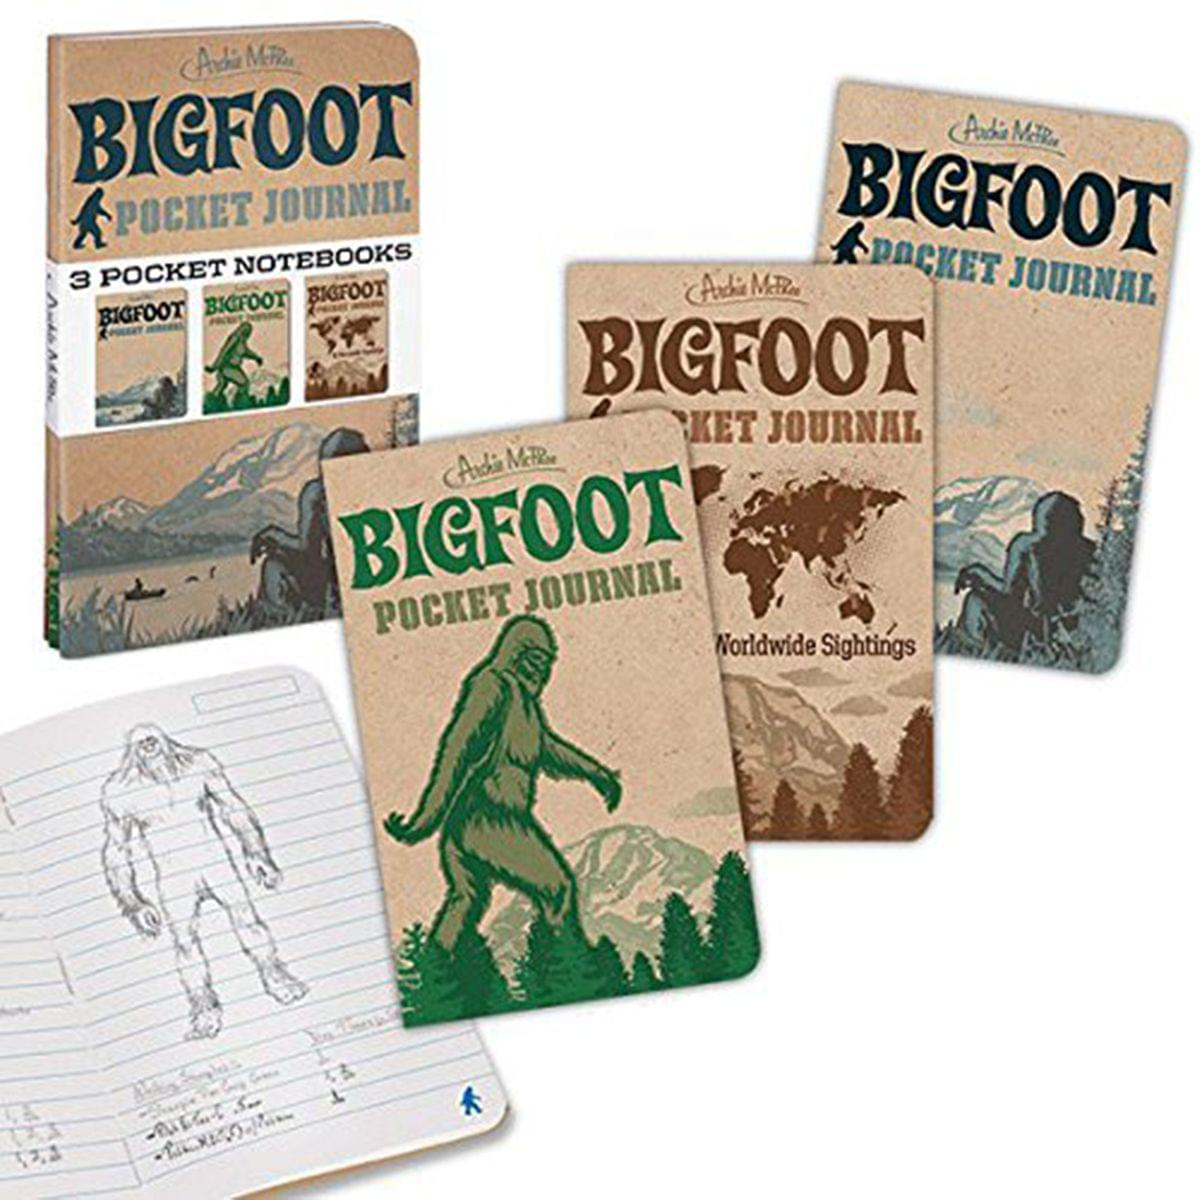 Bigfoot Pocket Journals: Set of 3 Notebooks